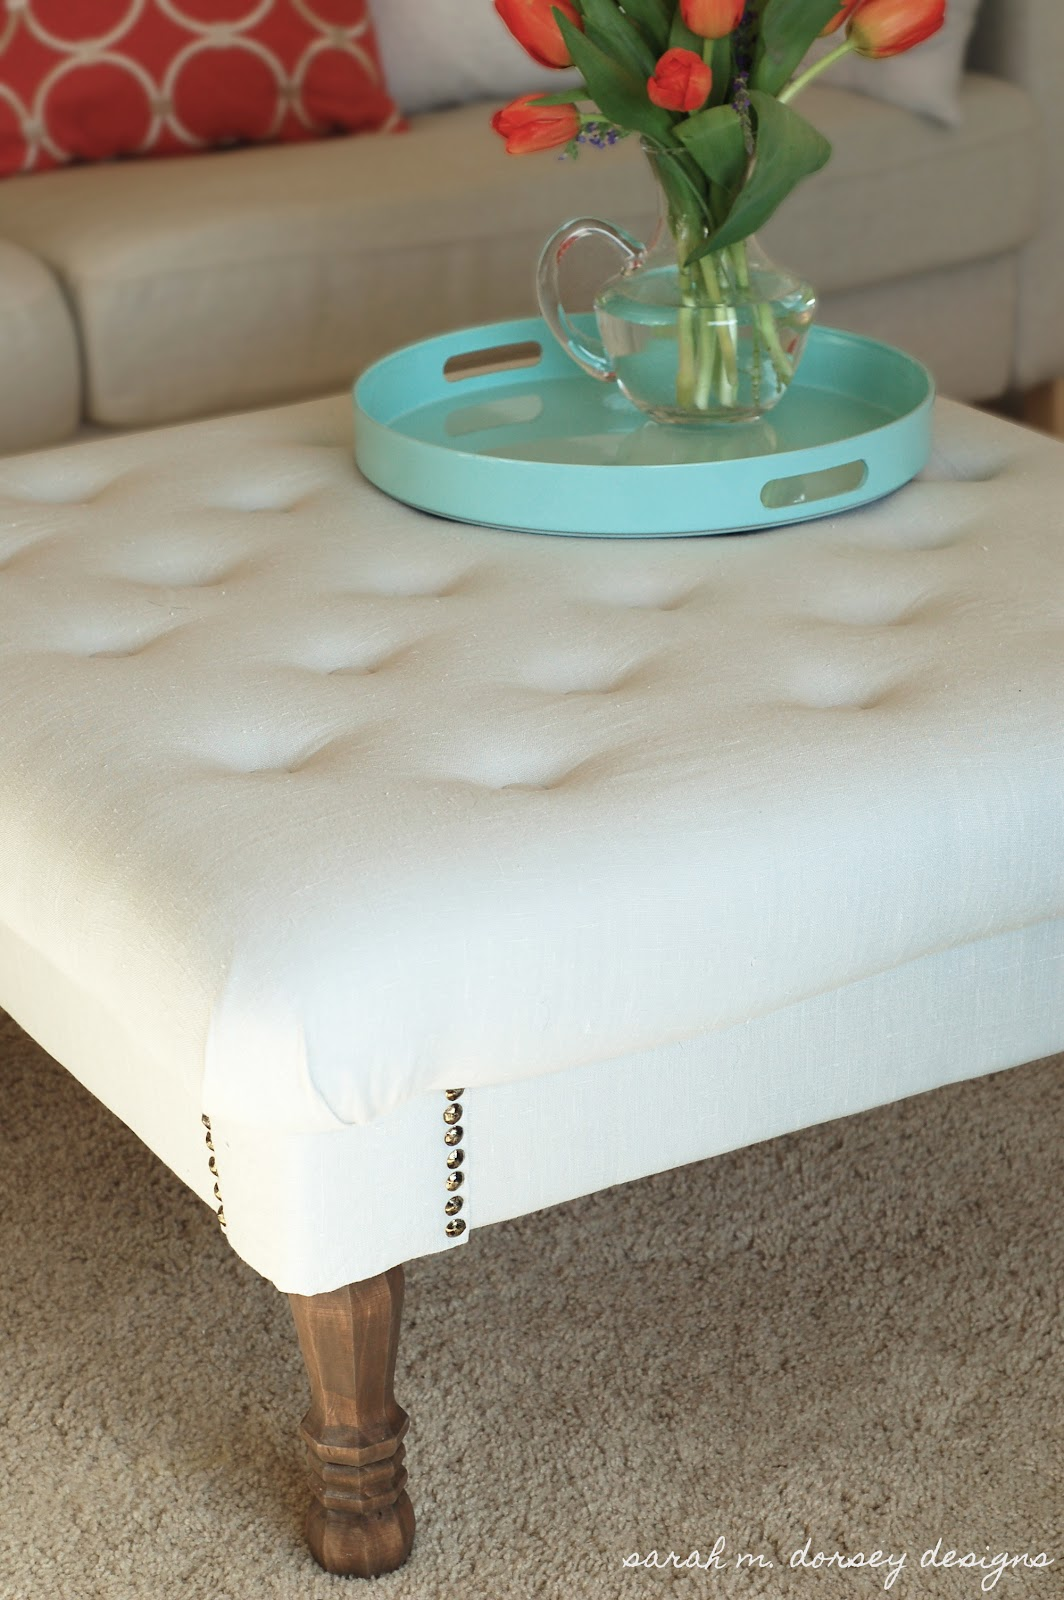 smdottoman1 How To Make A Tufted Ottoman From A Coffee Table